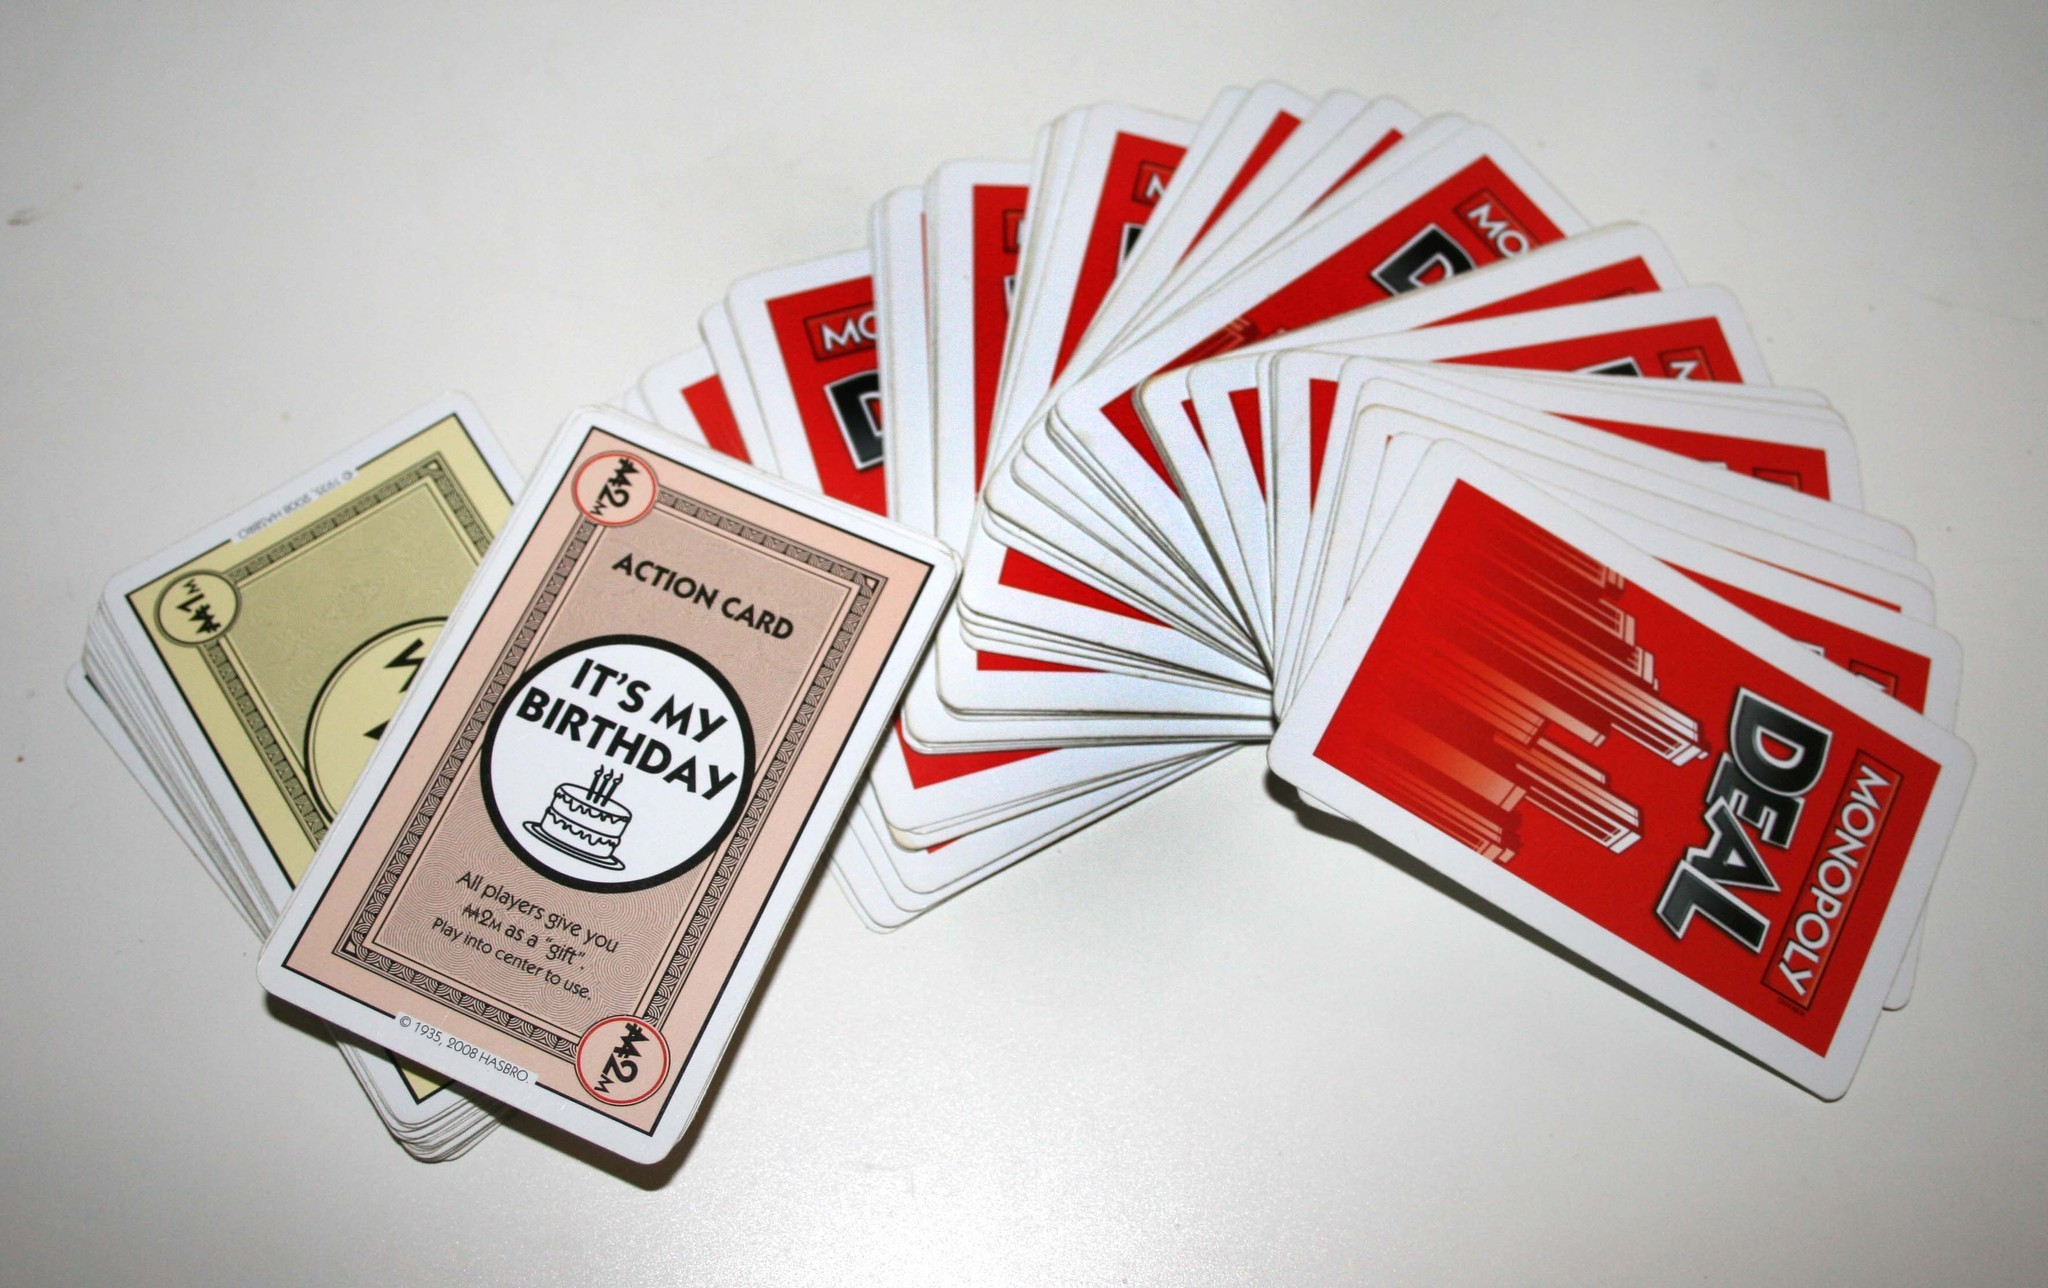 501 decorating ideas under 100 - Monopoly Deal